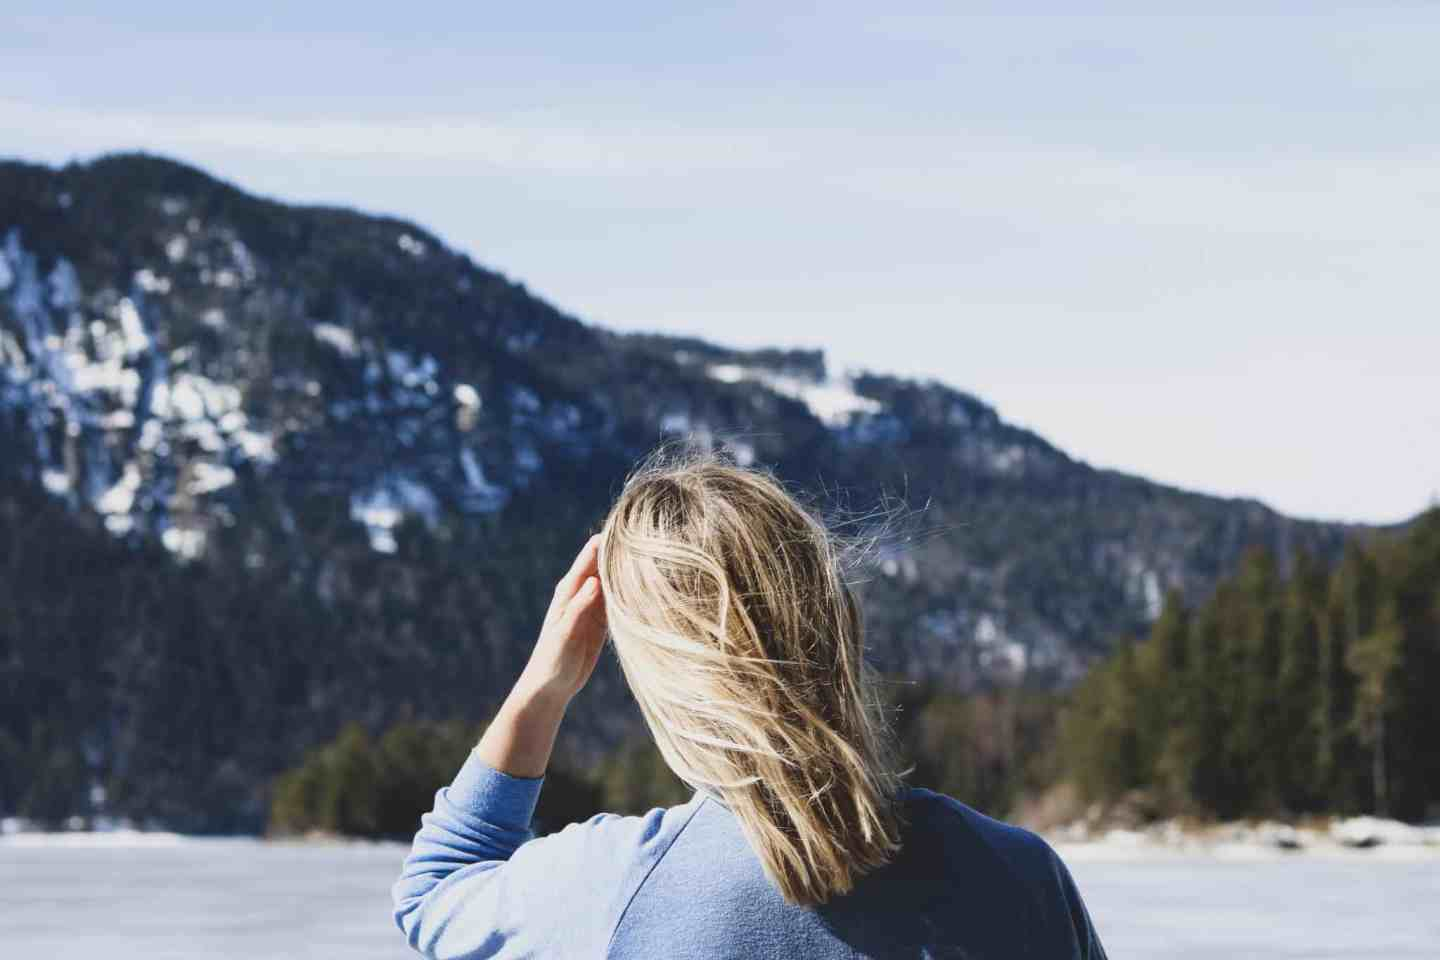 Girl with blonde hair standing in front of a snowy mountain with pine trees